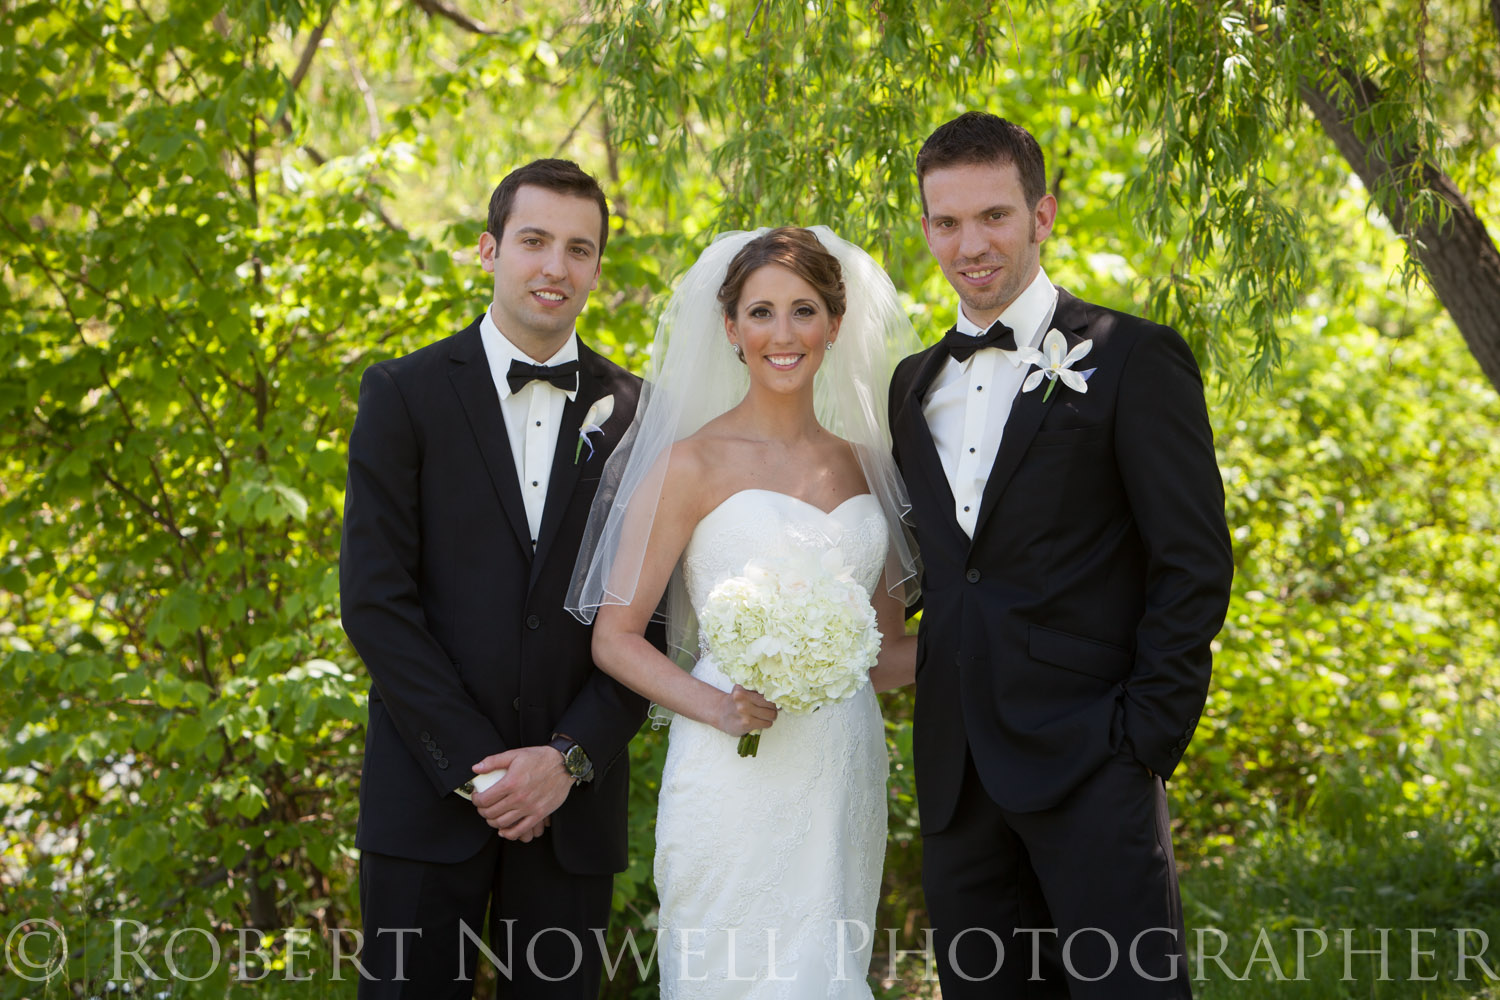 Victoria and her brothers, Niagara weddings